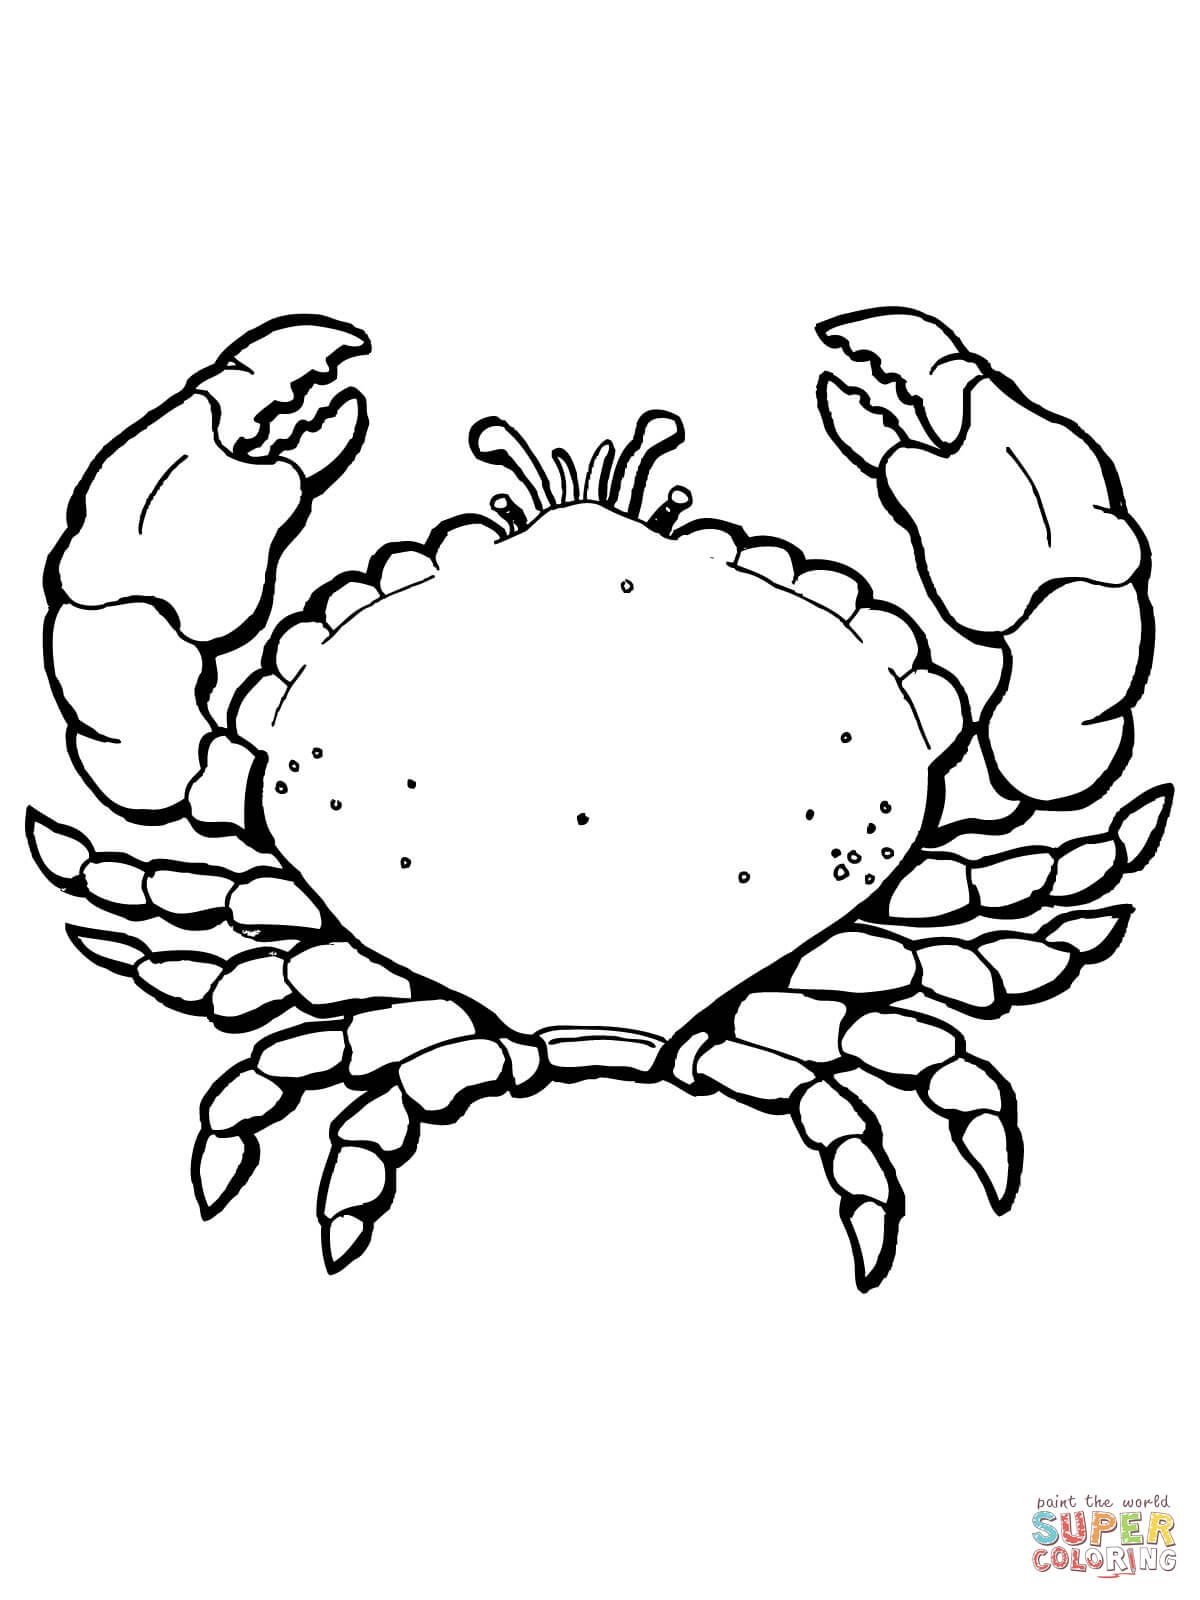 Coloring Crab With Big Claws Coloring Page Free Printable Pages With How To Draw Crab Coloring Pages For Kids Learn Colors Baby Click The Crab With Big Claws Co